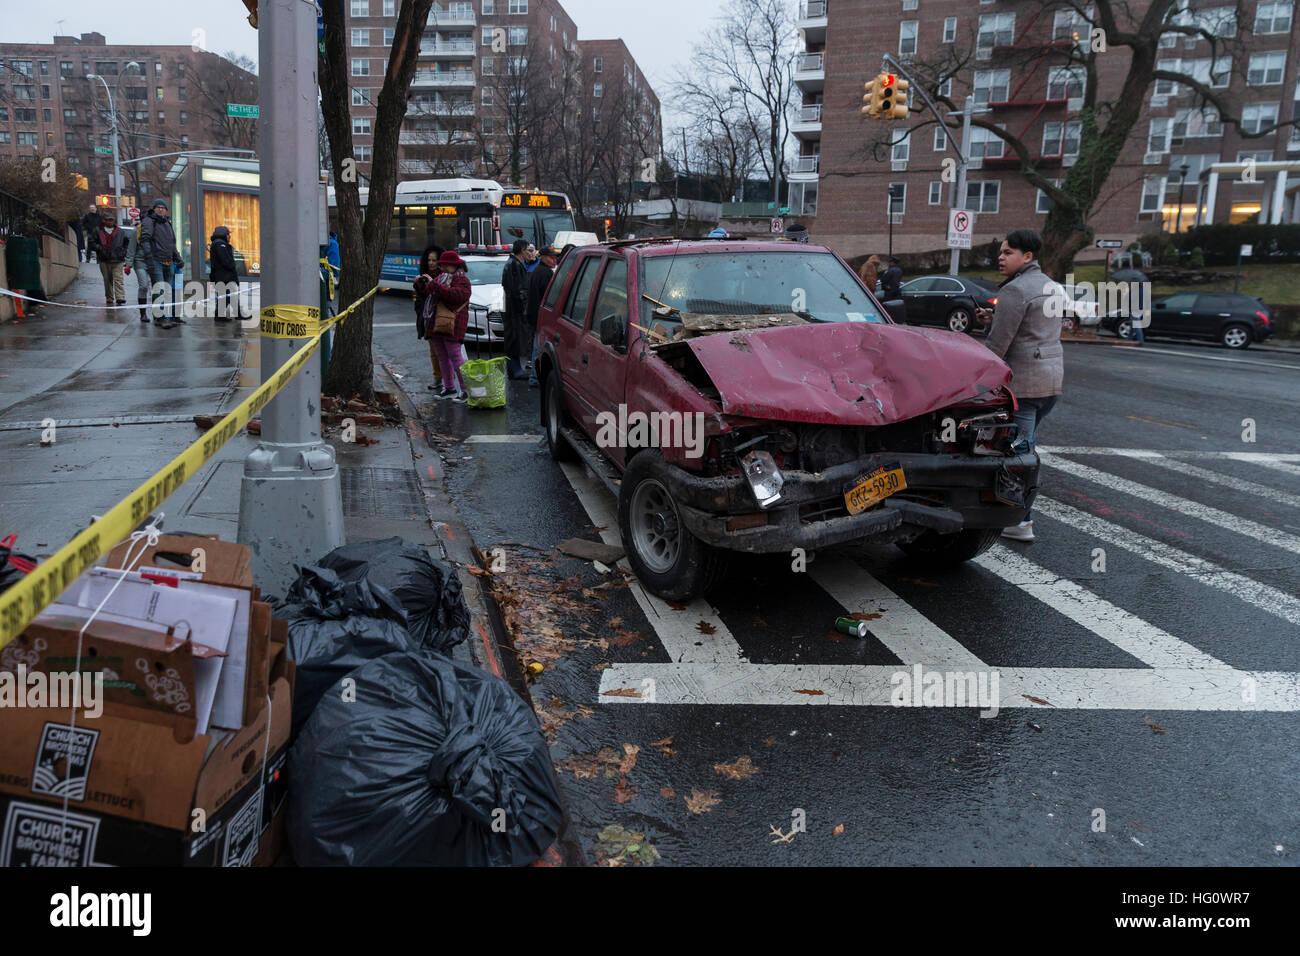 New York Ny Usa January 2 2017 Aftermath Of Car Accident In The